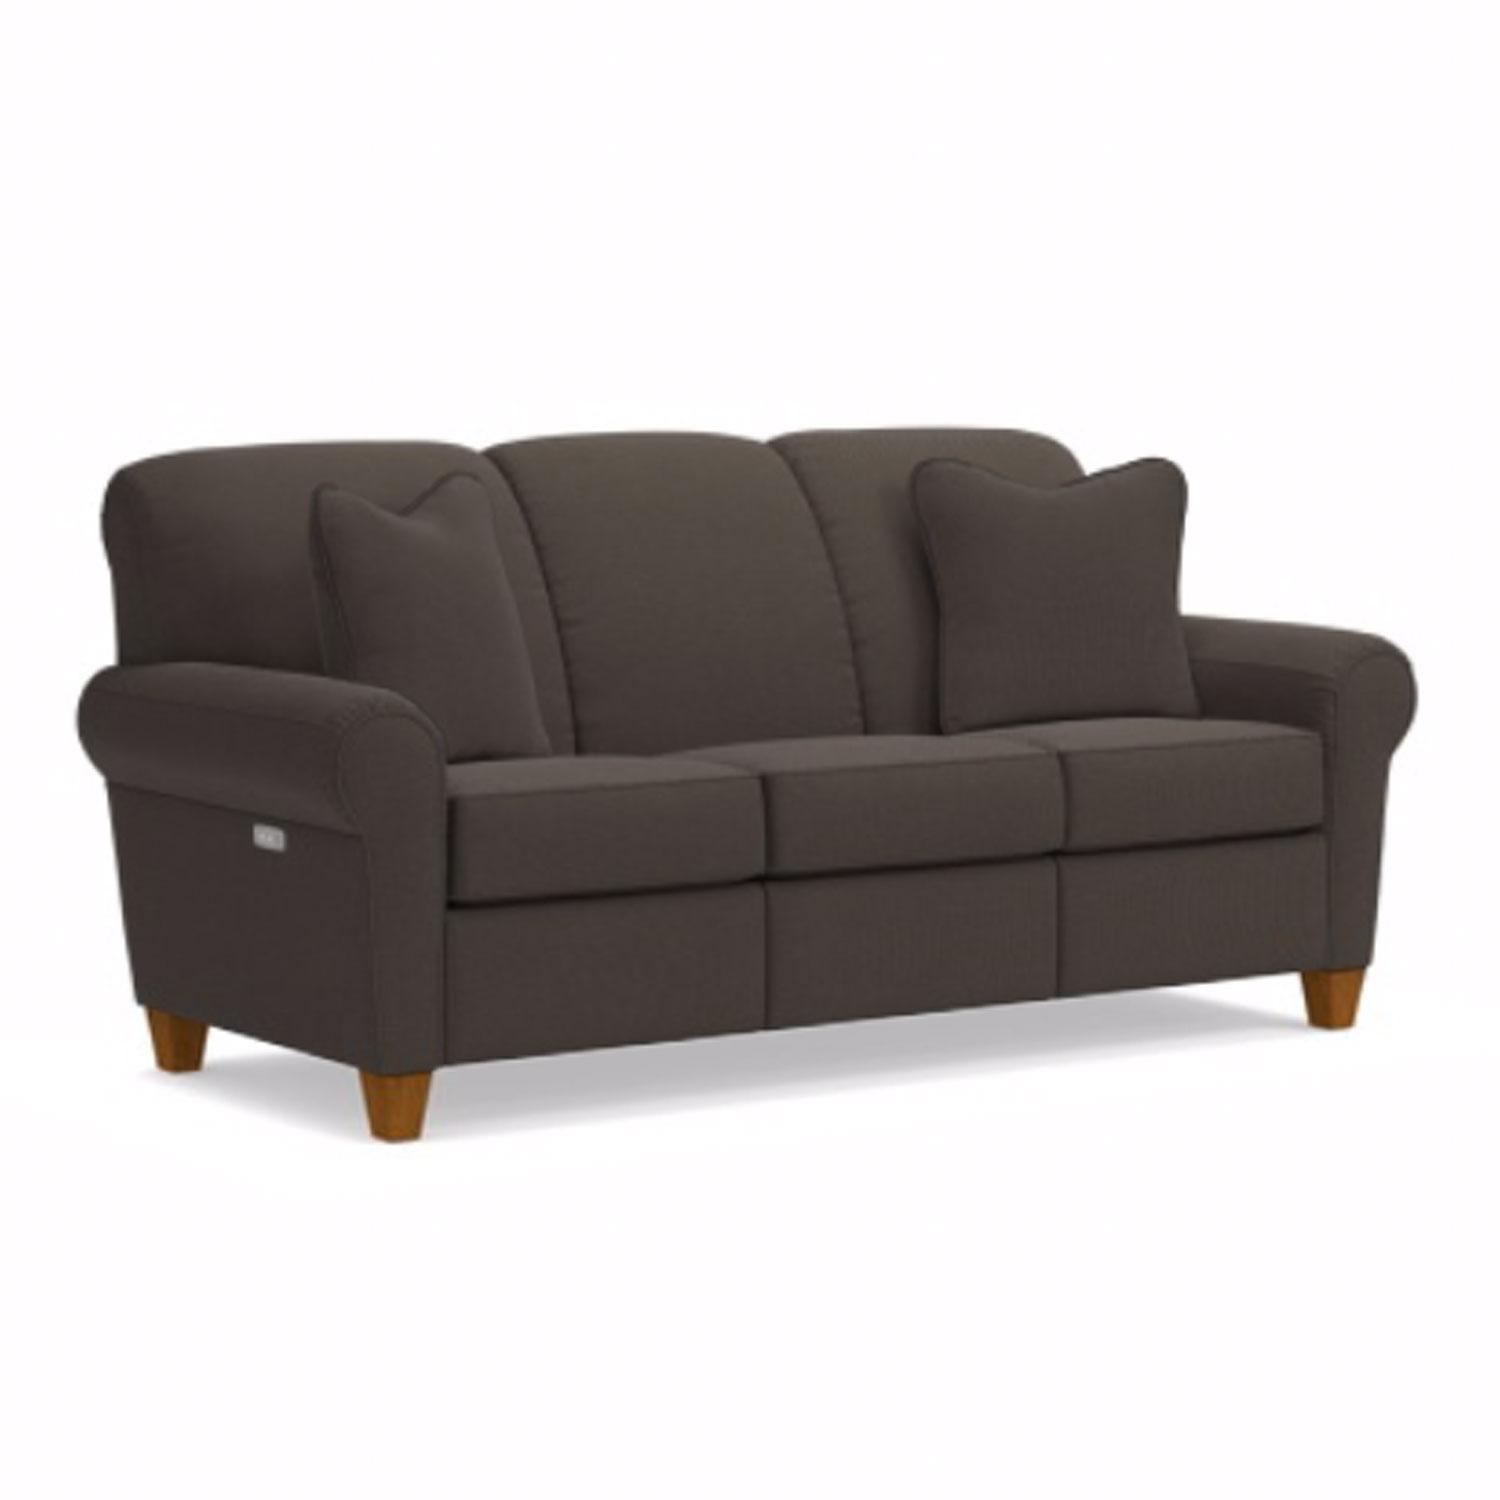 newton rolled arm sofa chaise convertible bed reviews corner with storage second hand bennett taraba home review